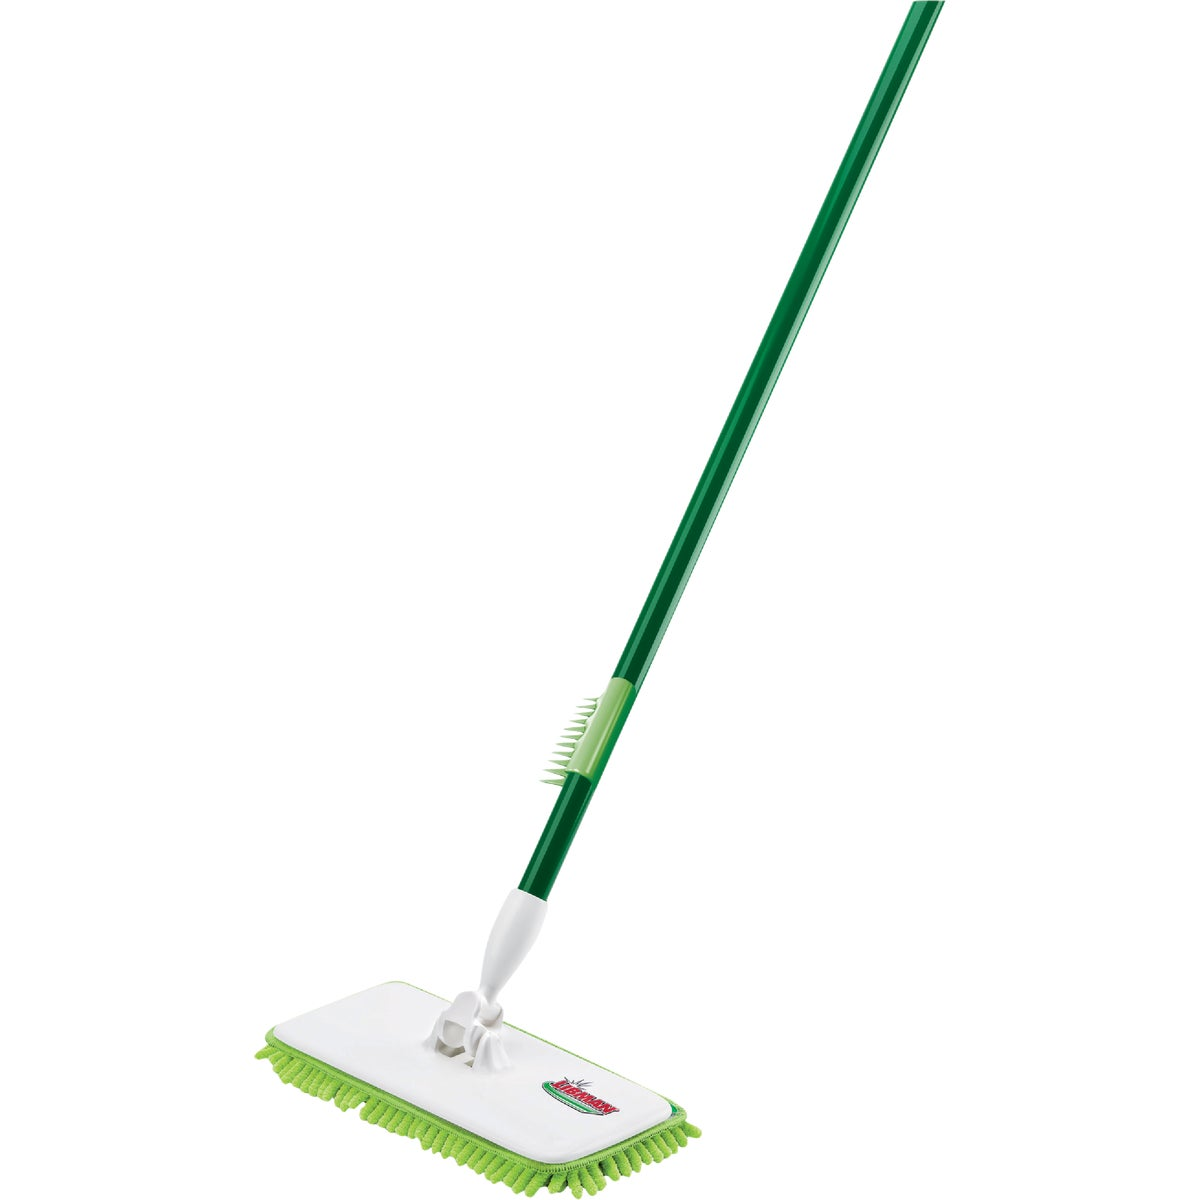 EVERY-WHICH-WAY DUST MOP - 133793 by F H P-lp